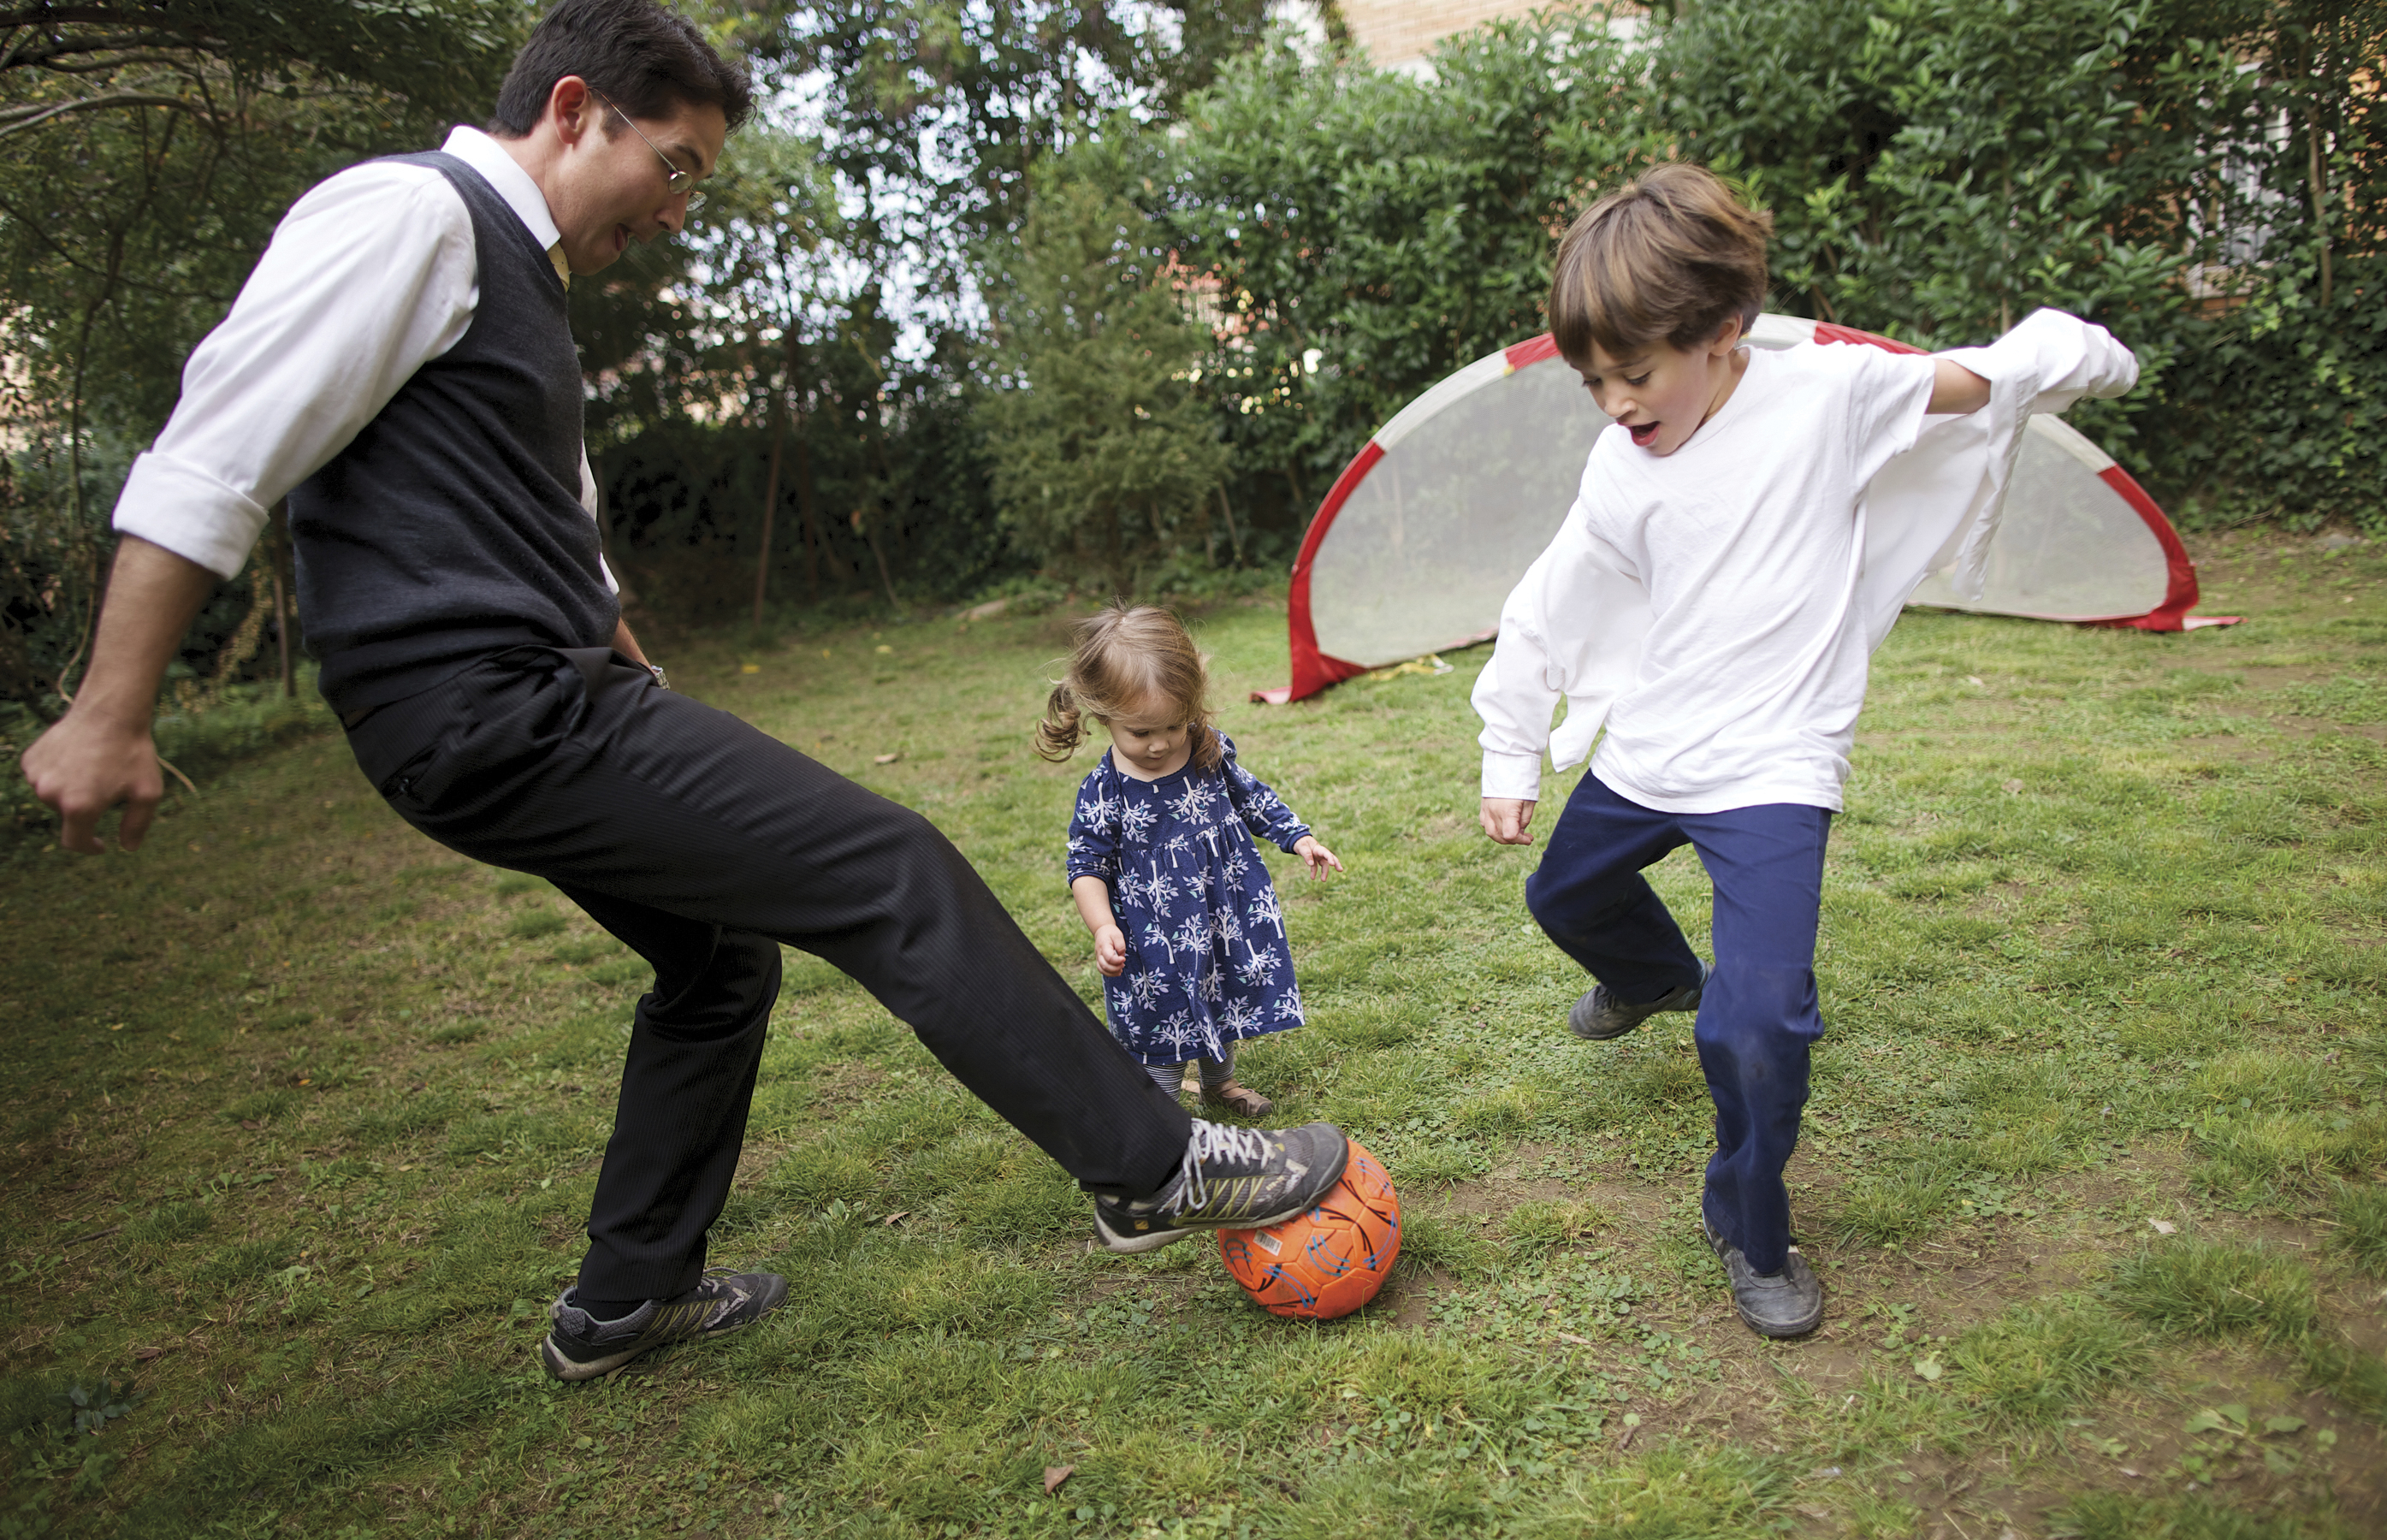 Niki plays soccer with his children.